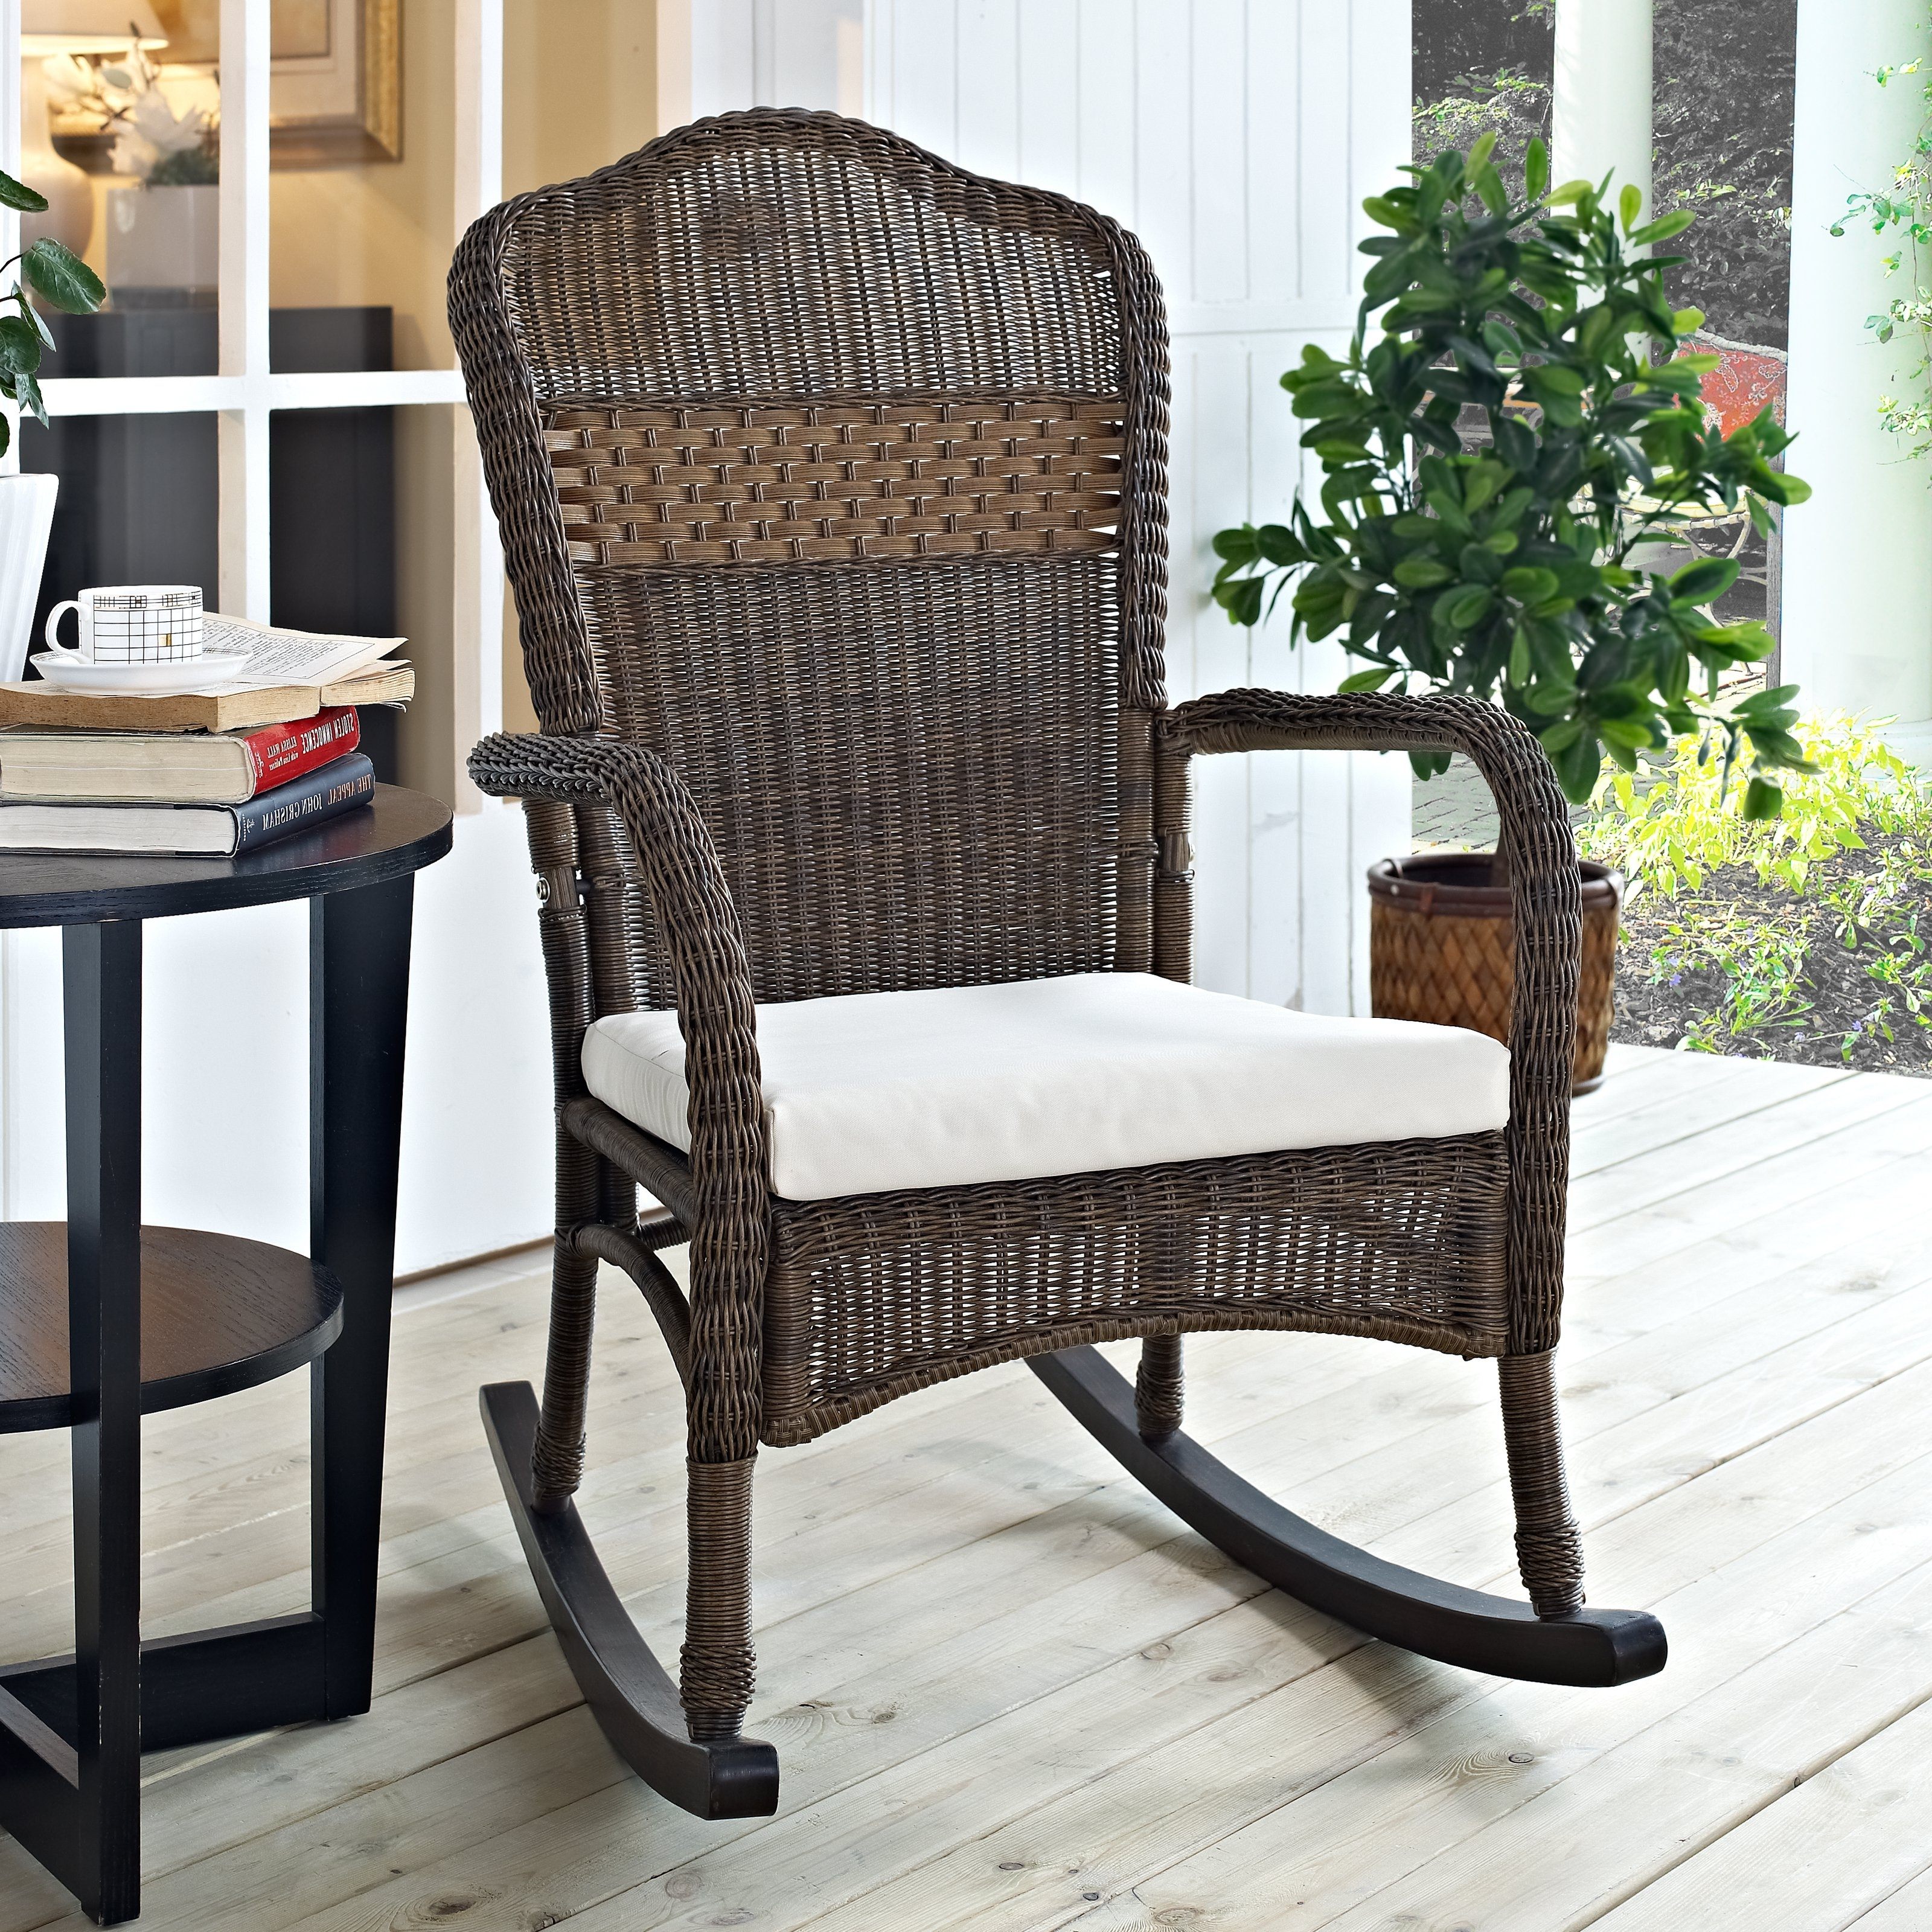 Most Up To Date Resin Wicker Rocking Chairs Inside Coral Coast Mocha Resin Wicker Rocking Chair With Beige Cushion (View 3 of 20)